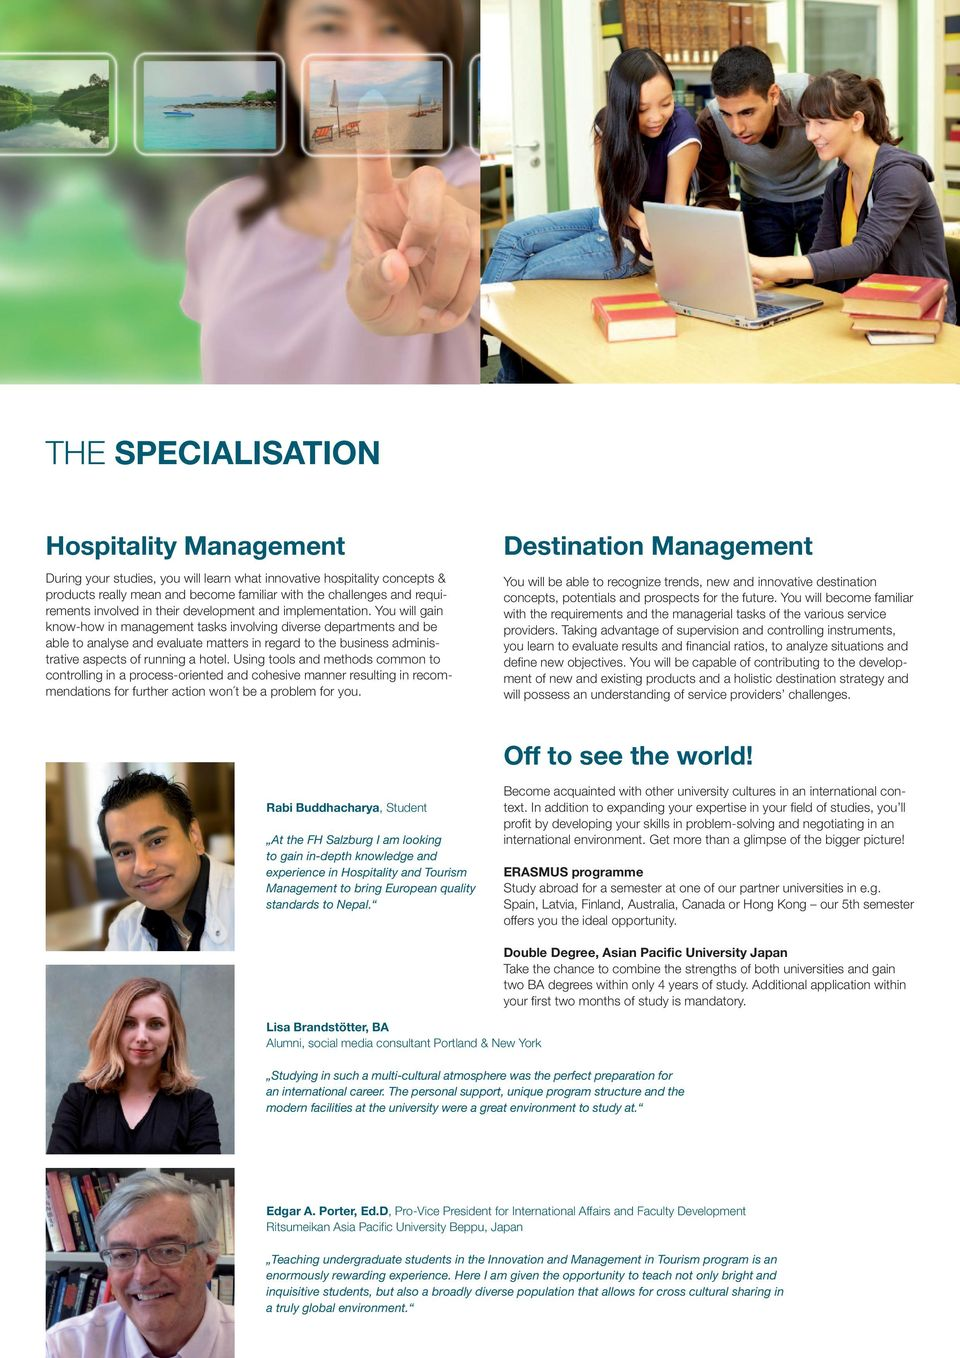 You will gain know-how in management tasks involving diverse departments and be able to analyse and evaluate matters in regard to the business administrative aspects of running a hotel.